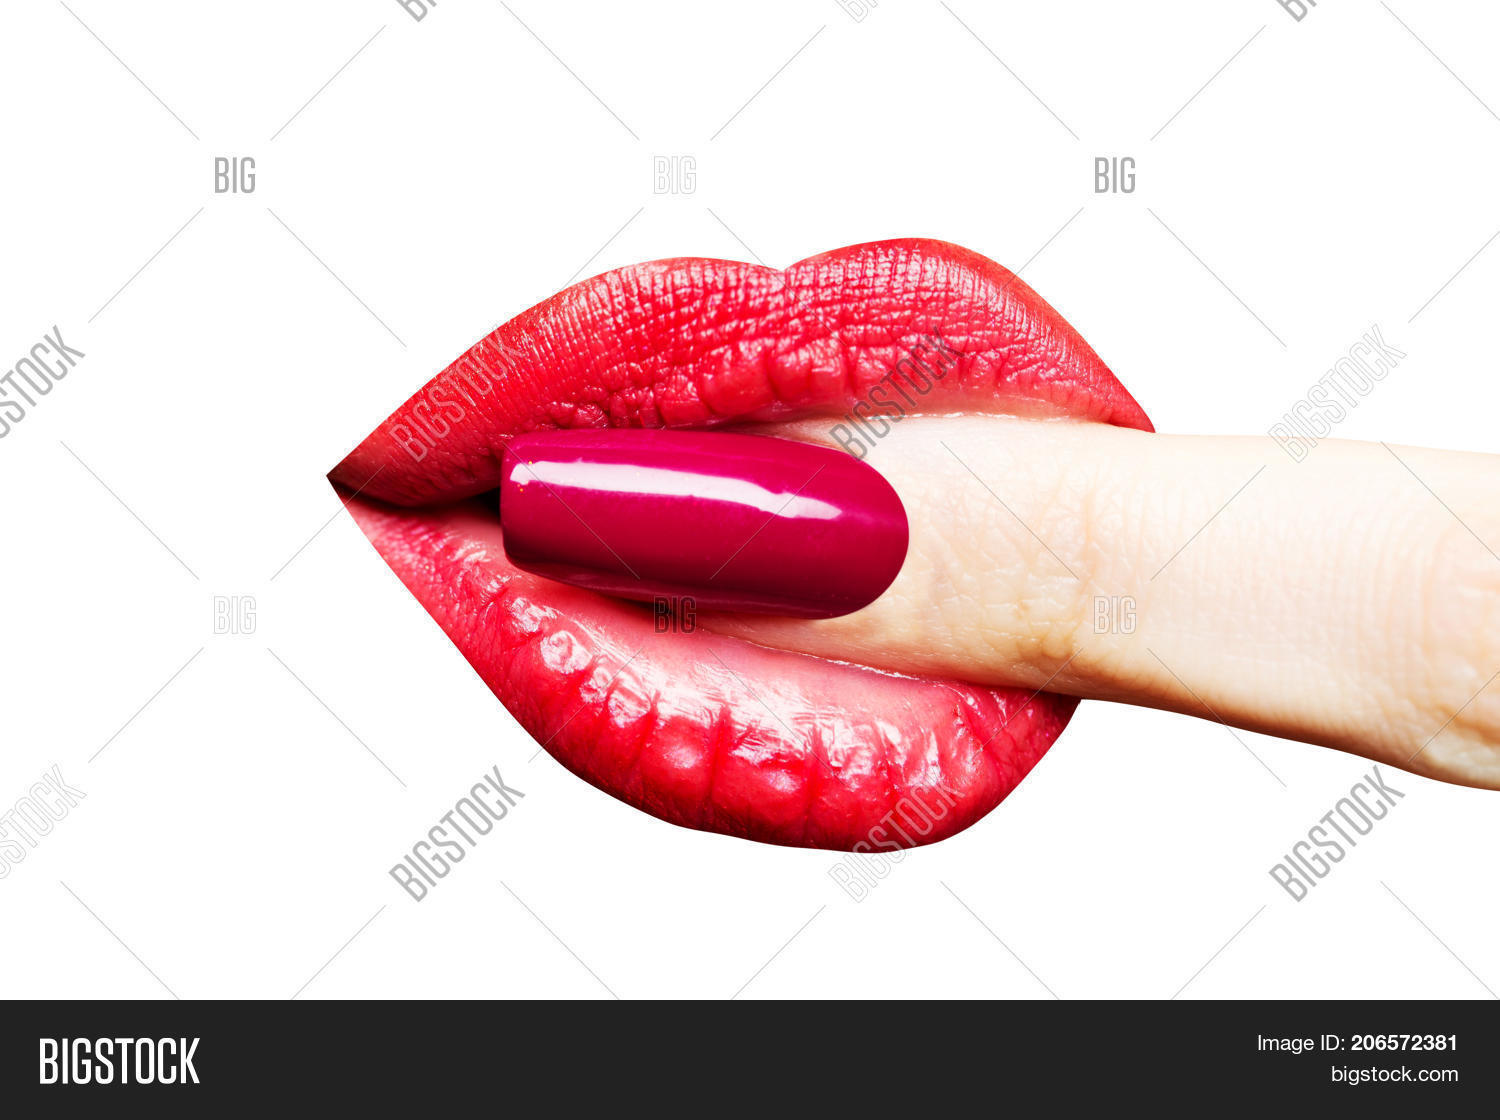 Womens Sexy Finger With Red Nail Polish In The Mouth With The Lips With Red Lipstick